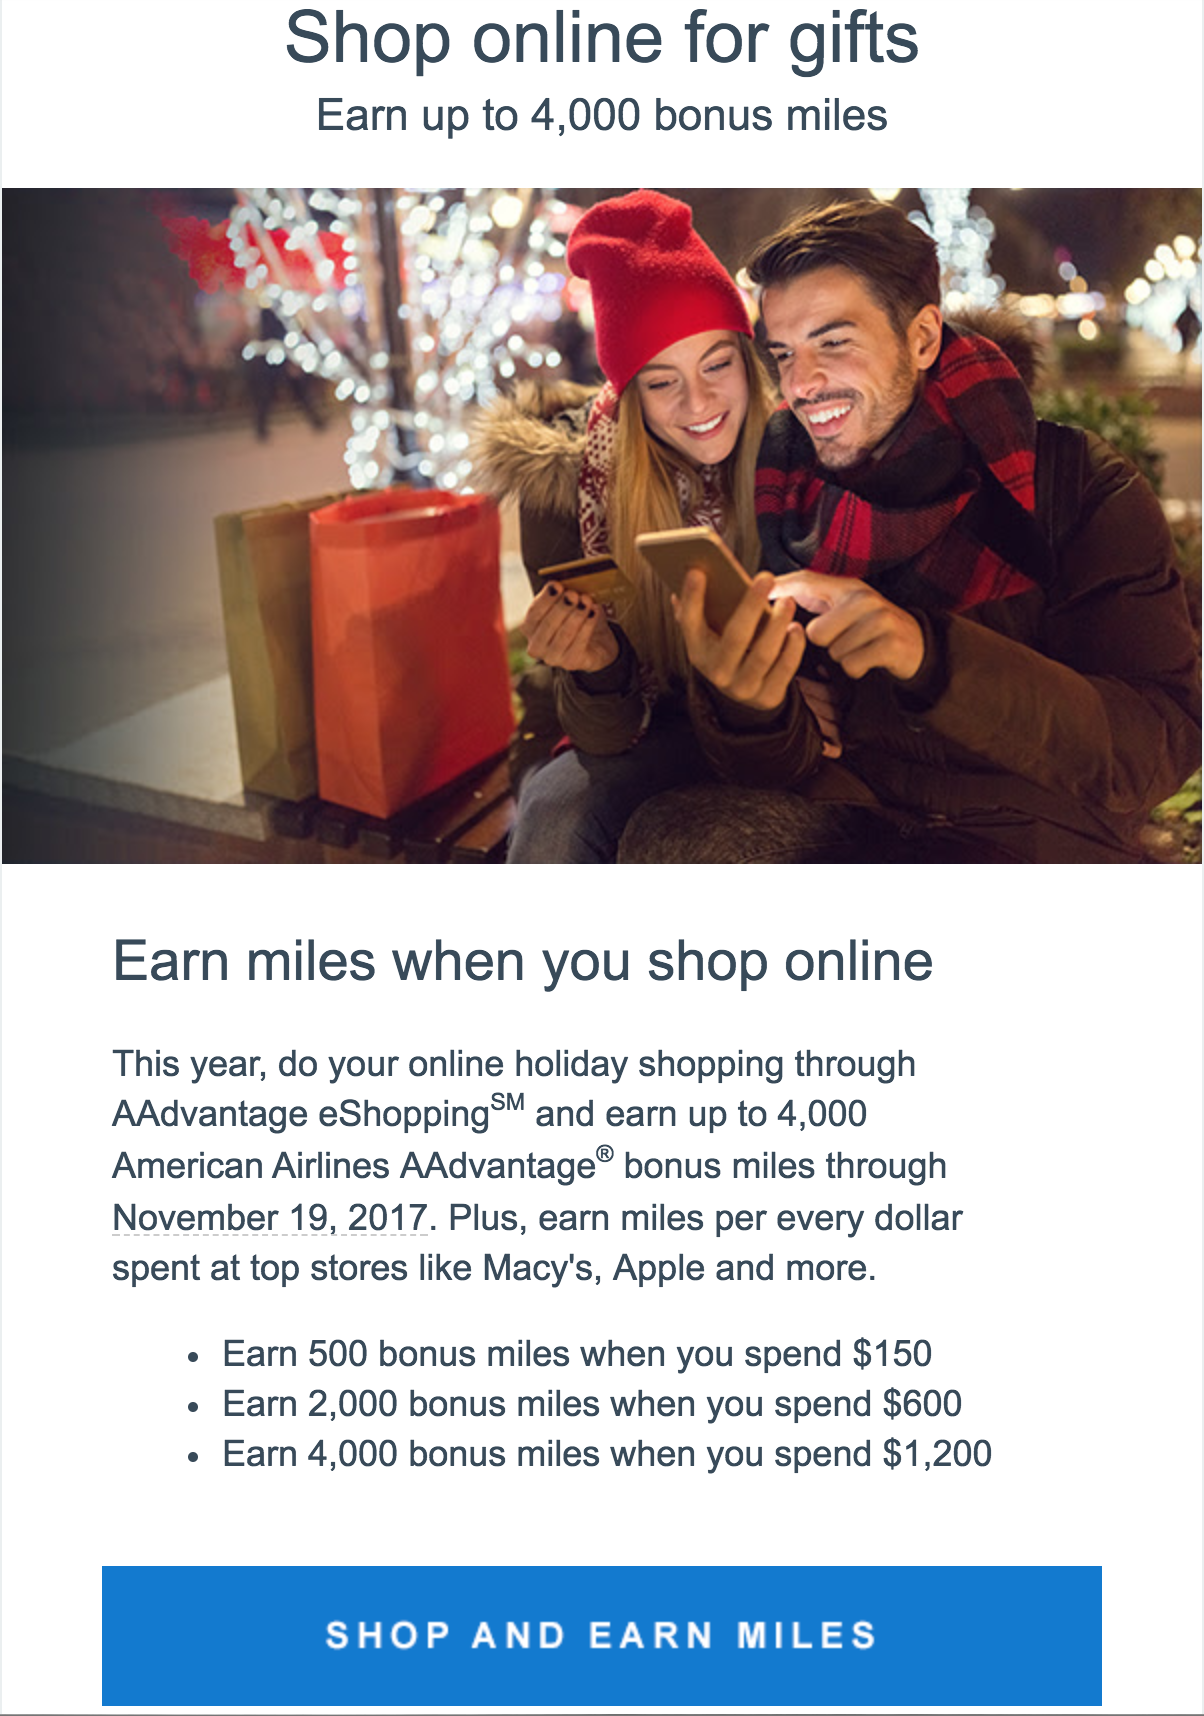 AAdvantage eShopping Christmas 2017 promotion  (click to enlarge)